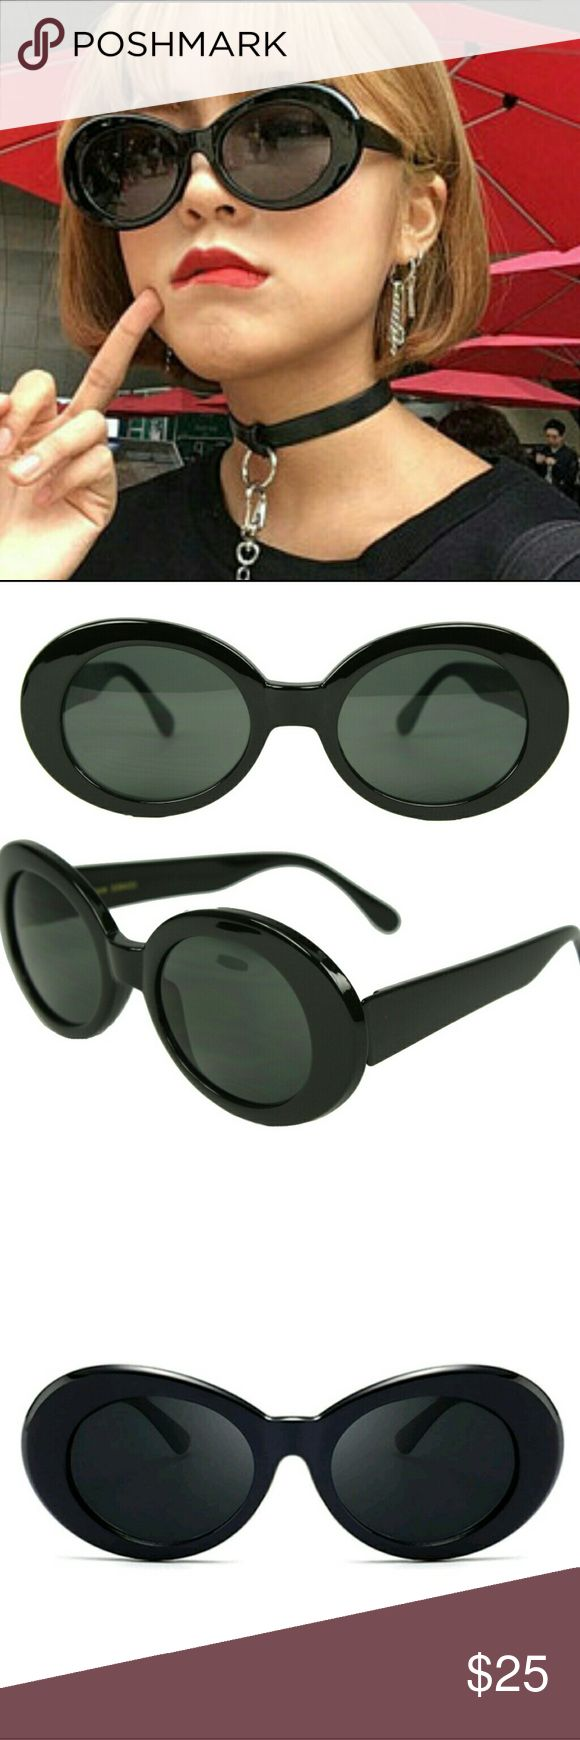 🔥Sale Black Cobain's 🔥 New Vintage Retro Oversized Kurt Cobain's. Excellent Quality. Unisex for Men and Women. Trending Now. All the Stars are wearing these. Get yours today while supplies last. Make me a reasonable offer. Accessories Glasses